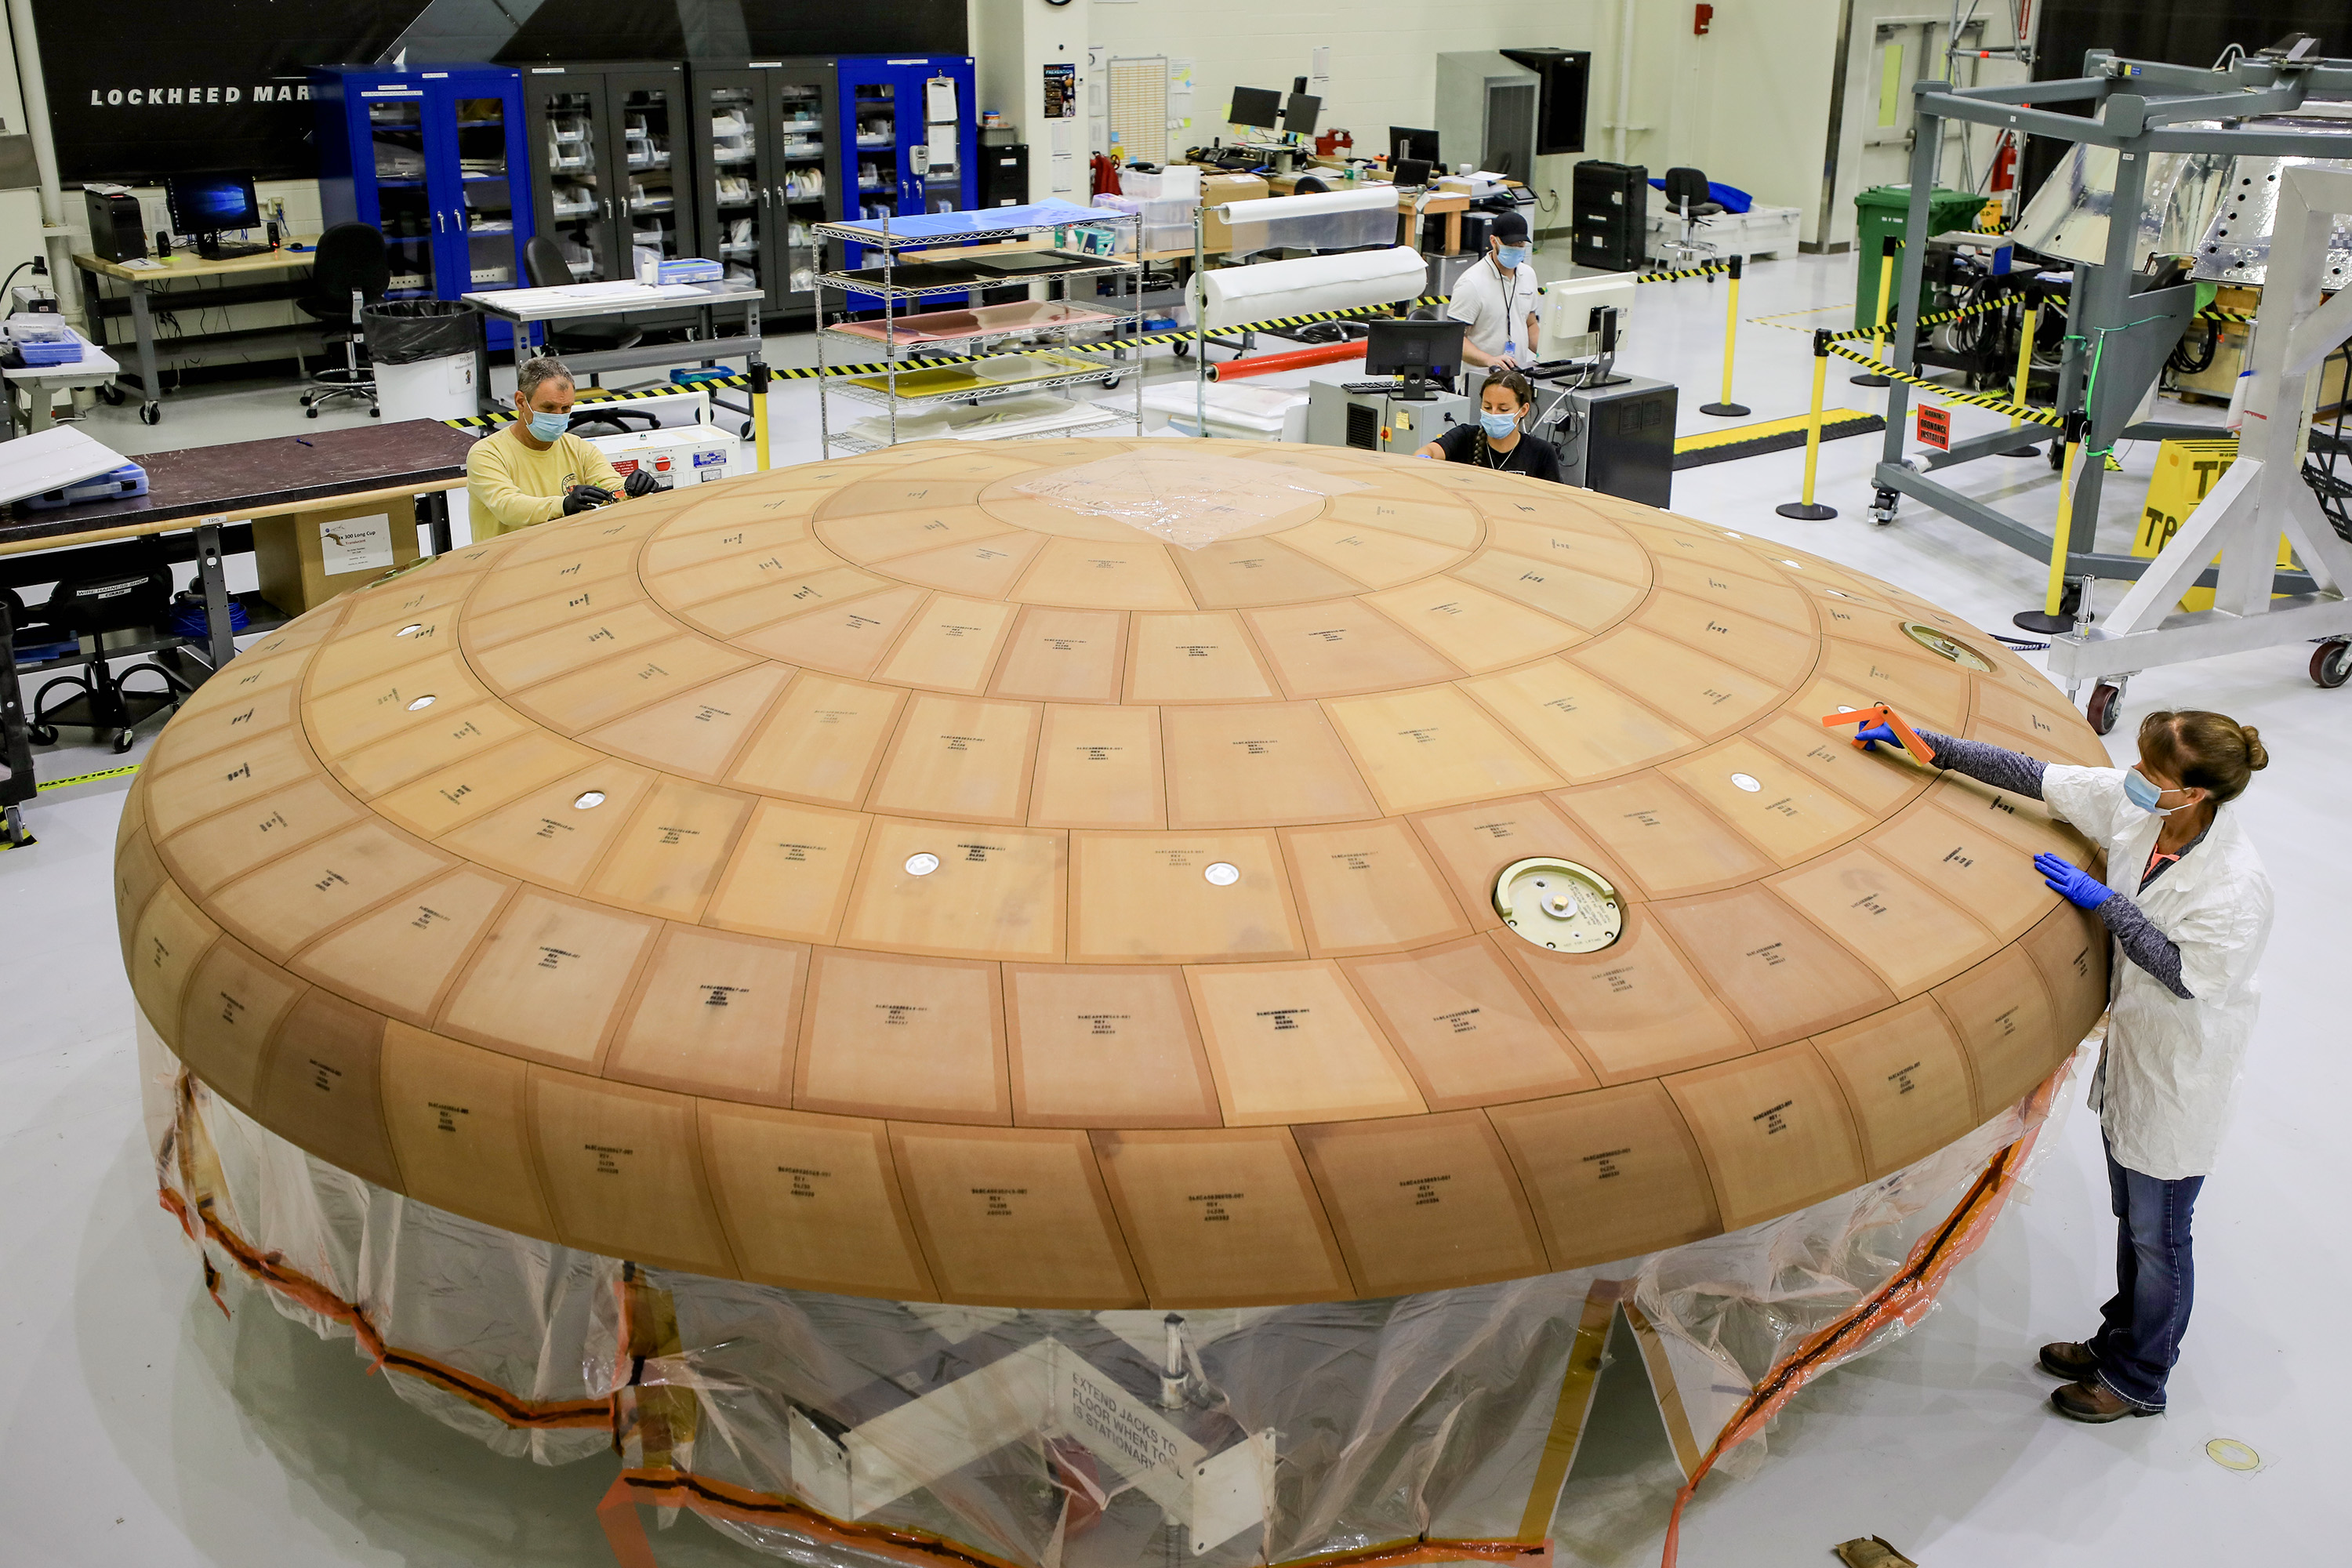 Heat Shield Milestone Complete for First Orion Mission with Crew